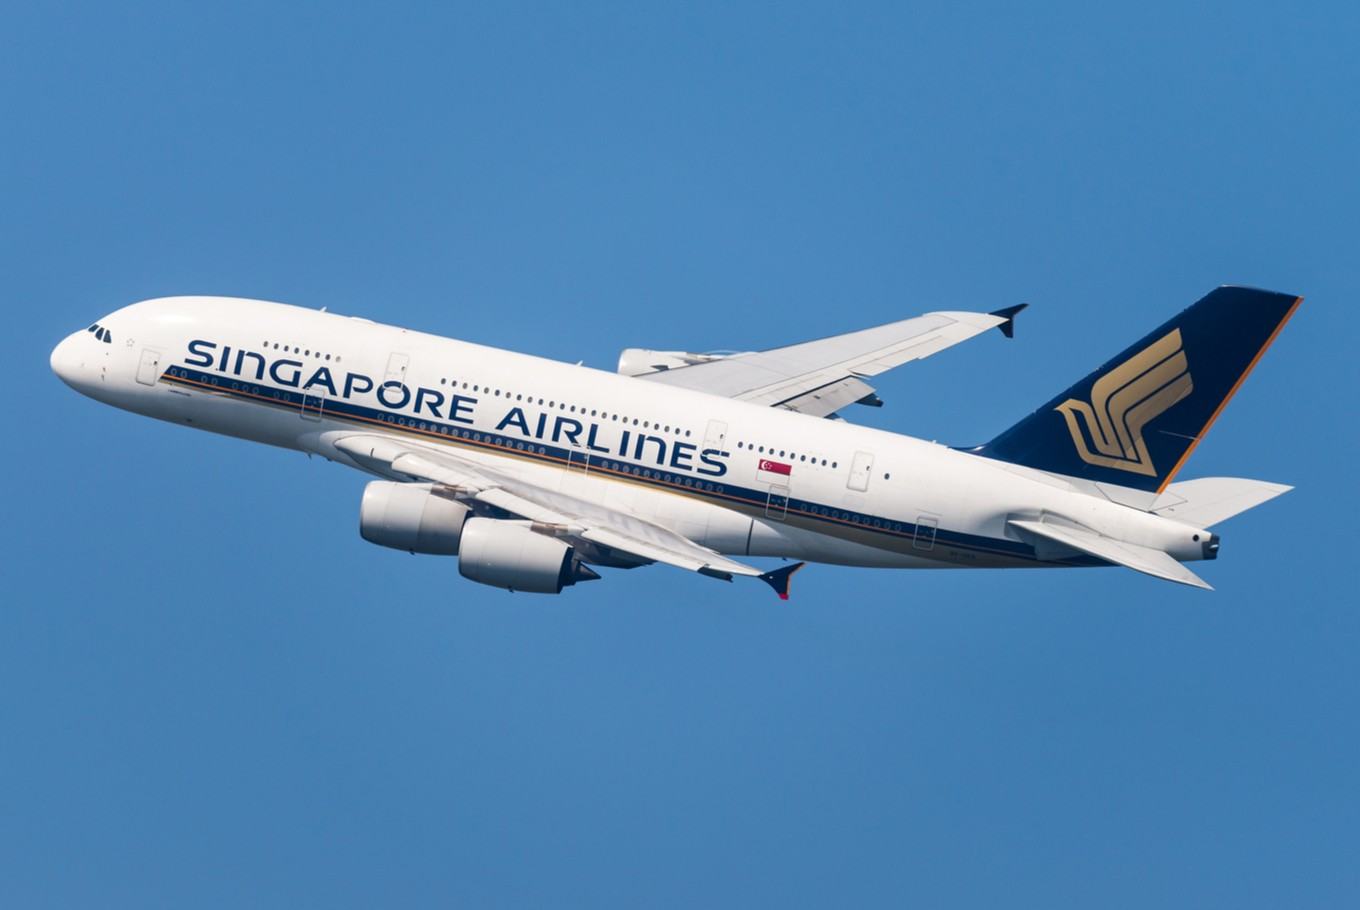 Singapore Airlines to move to Soekarno-Hatta airport Terminal 3